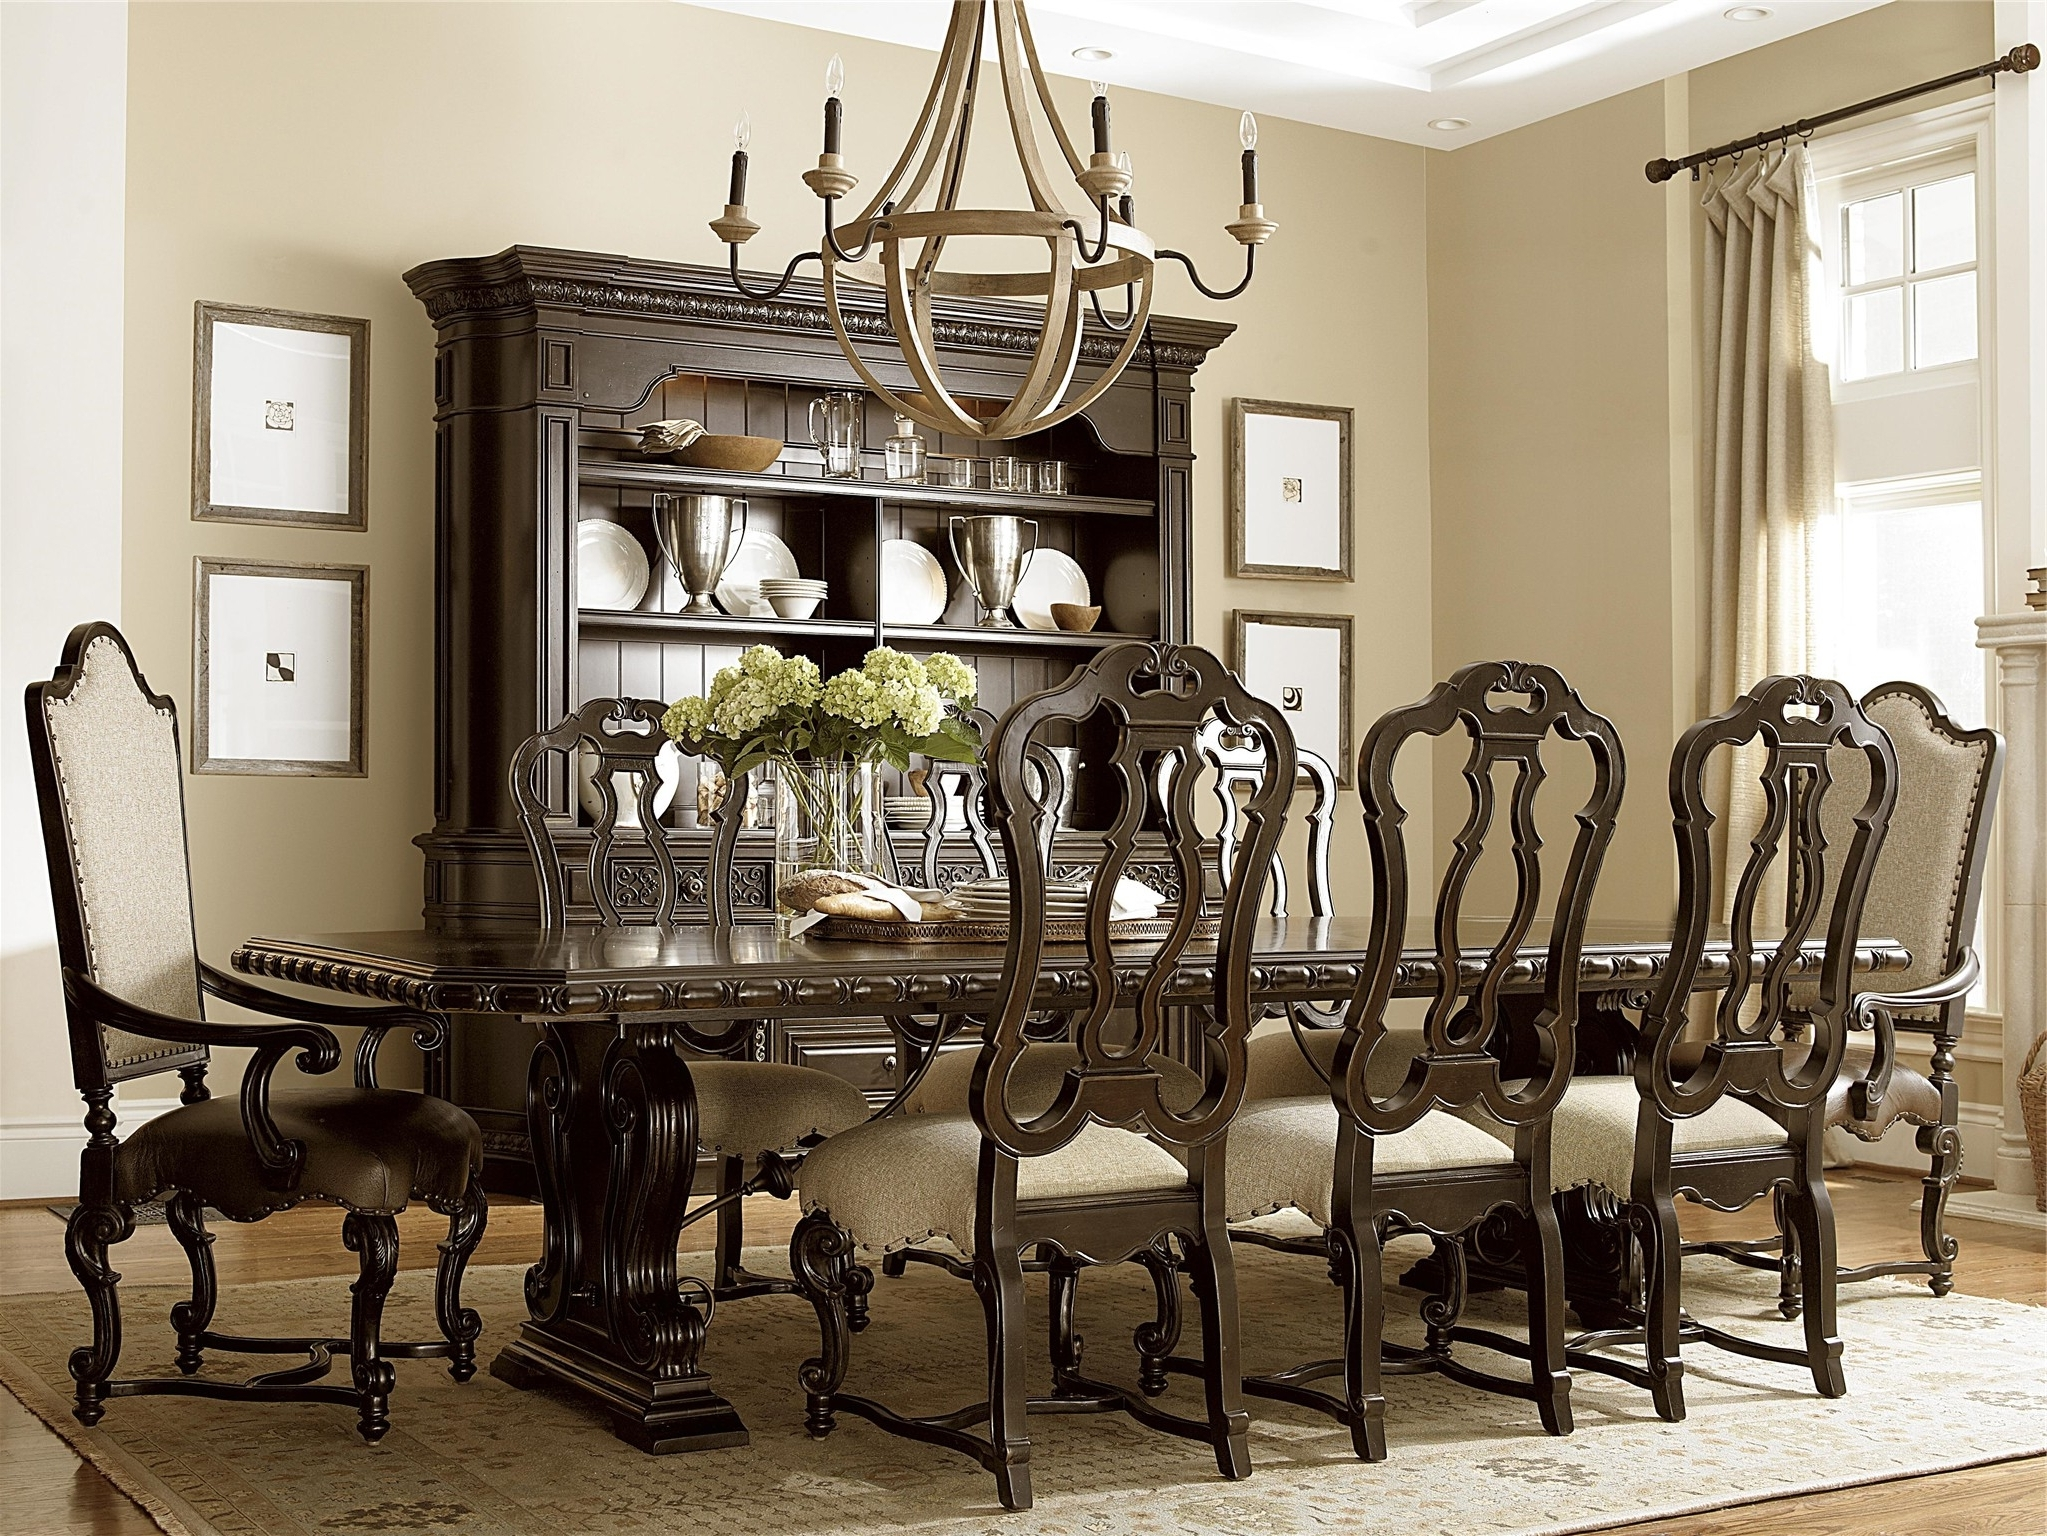 2017 Universal Dining Tables Pertaining To 7. Universal Furniture Dining Table Roomamerican Drew Modern (Gallery 10 of 25)